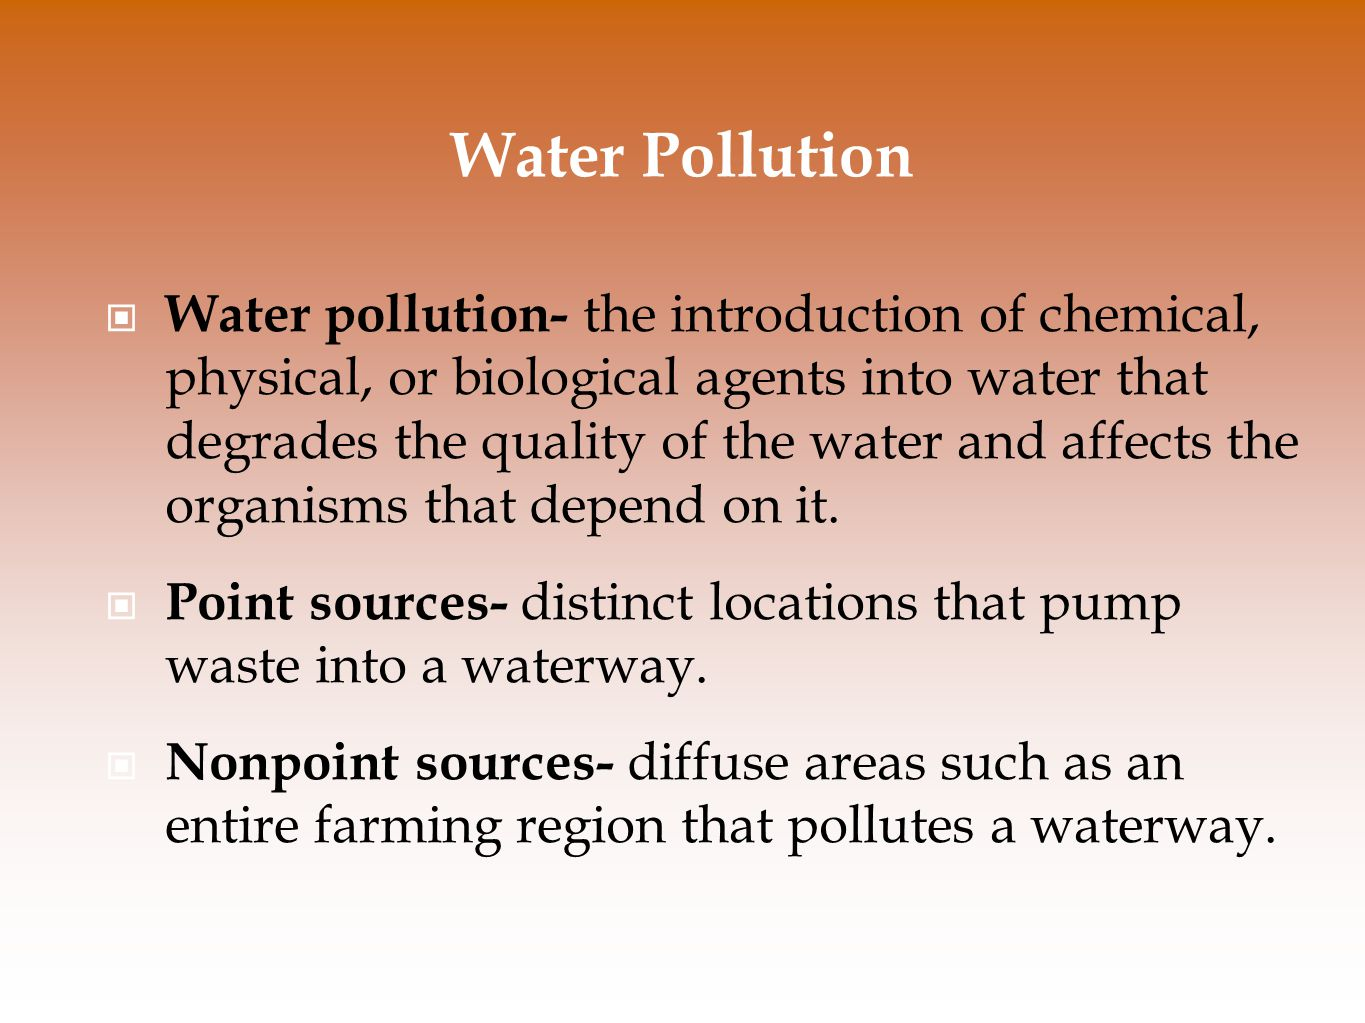 Water Pollution Water pollution- the introduction of chemical, physical, or biological agents into water that degrades the quality of the water and affects the organisms that depend on it.